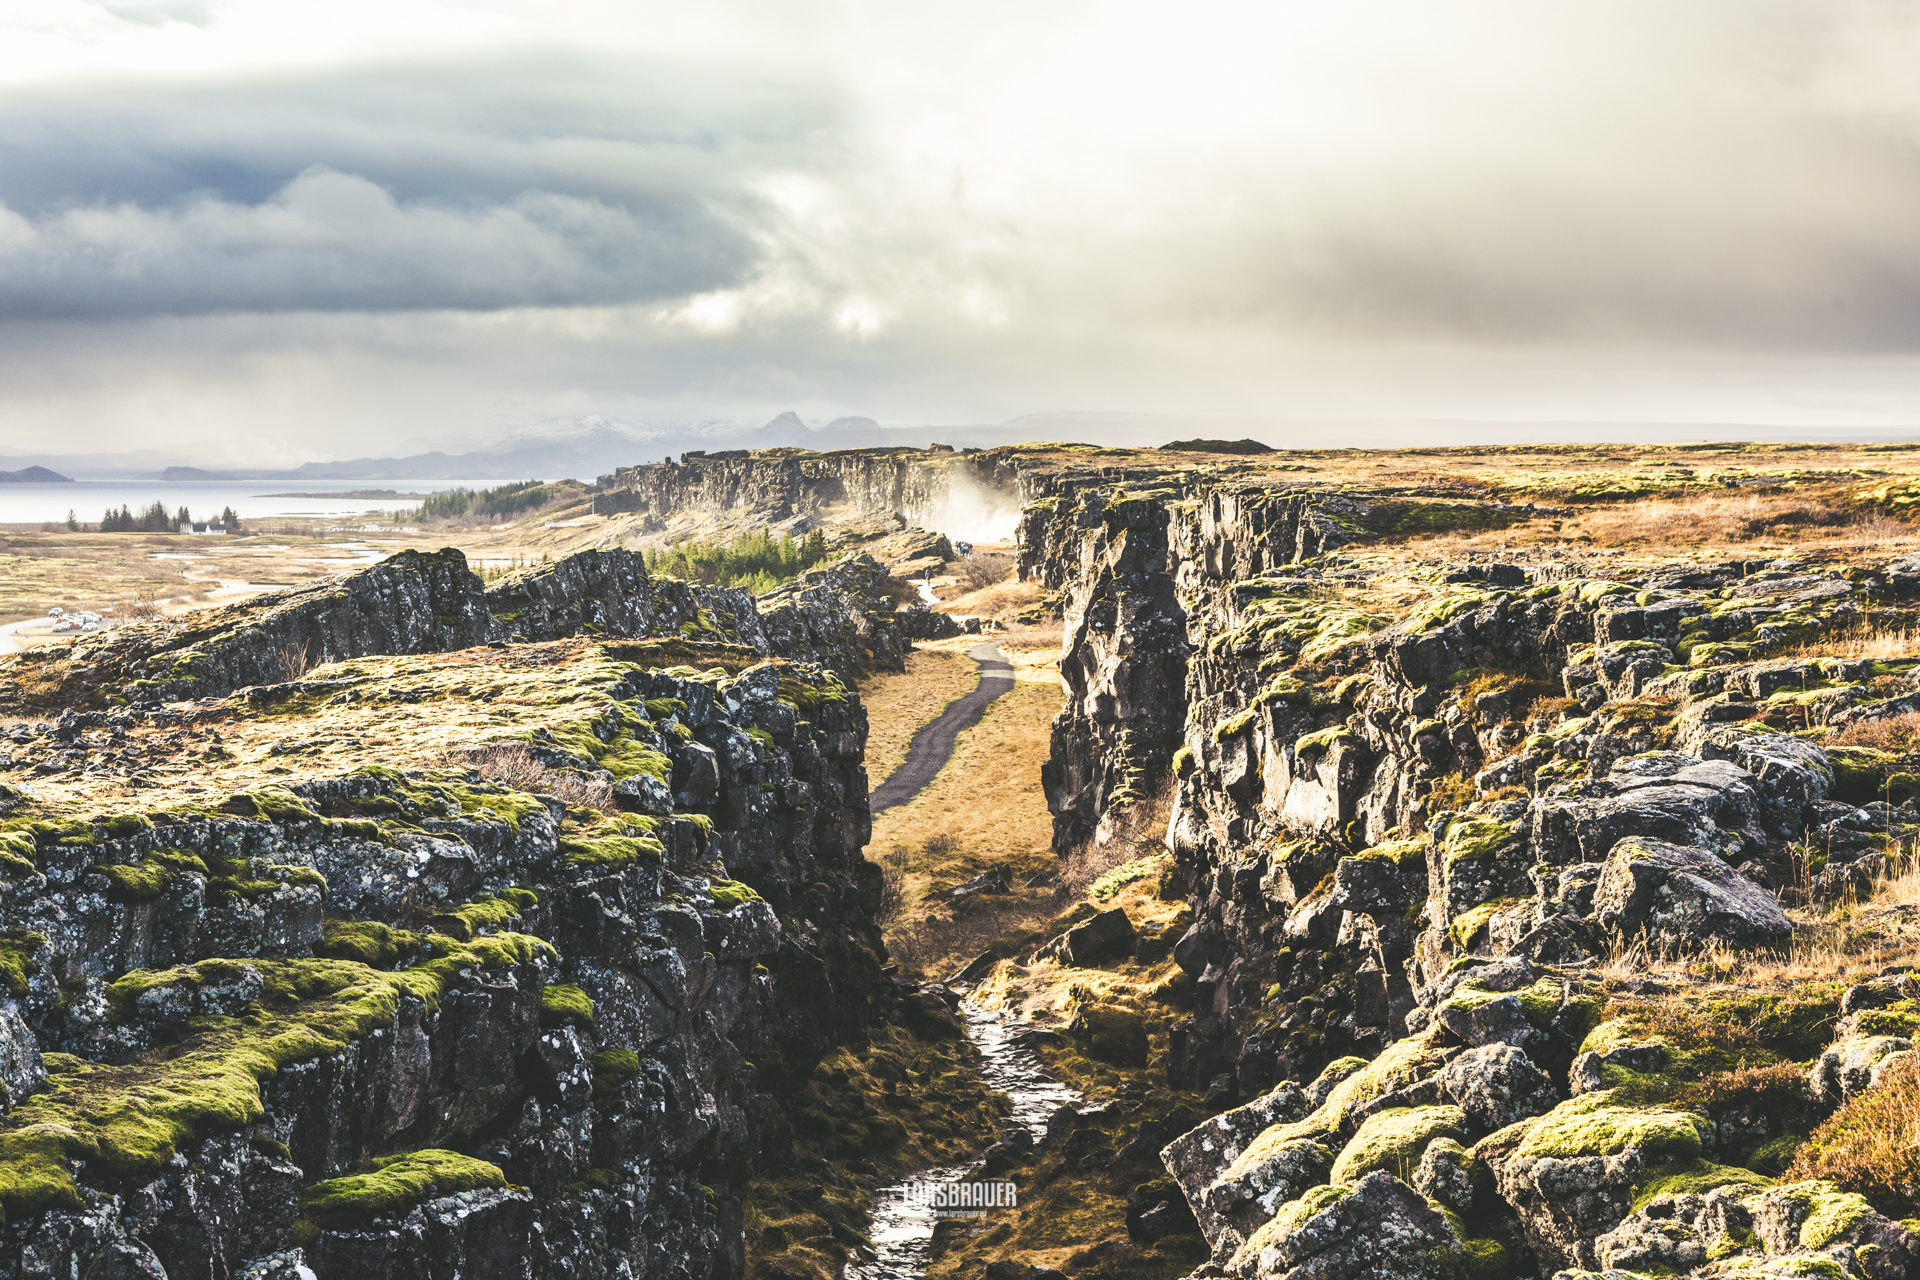 Thingvellir at the rift valley in Iceland, Iceland